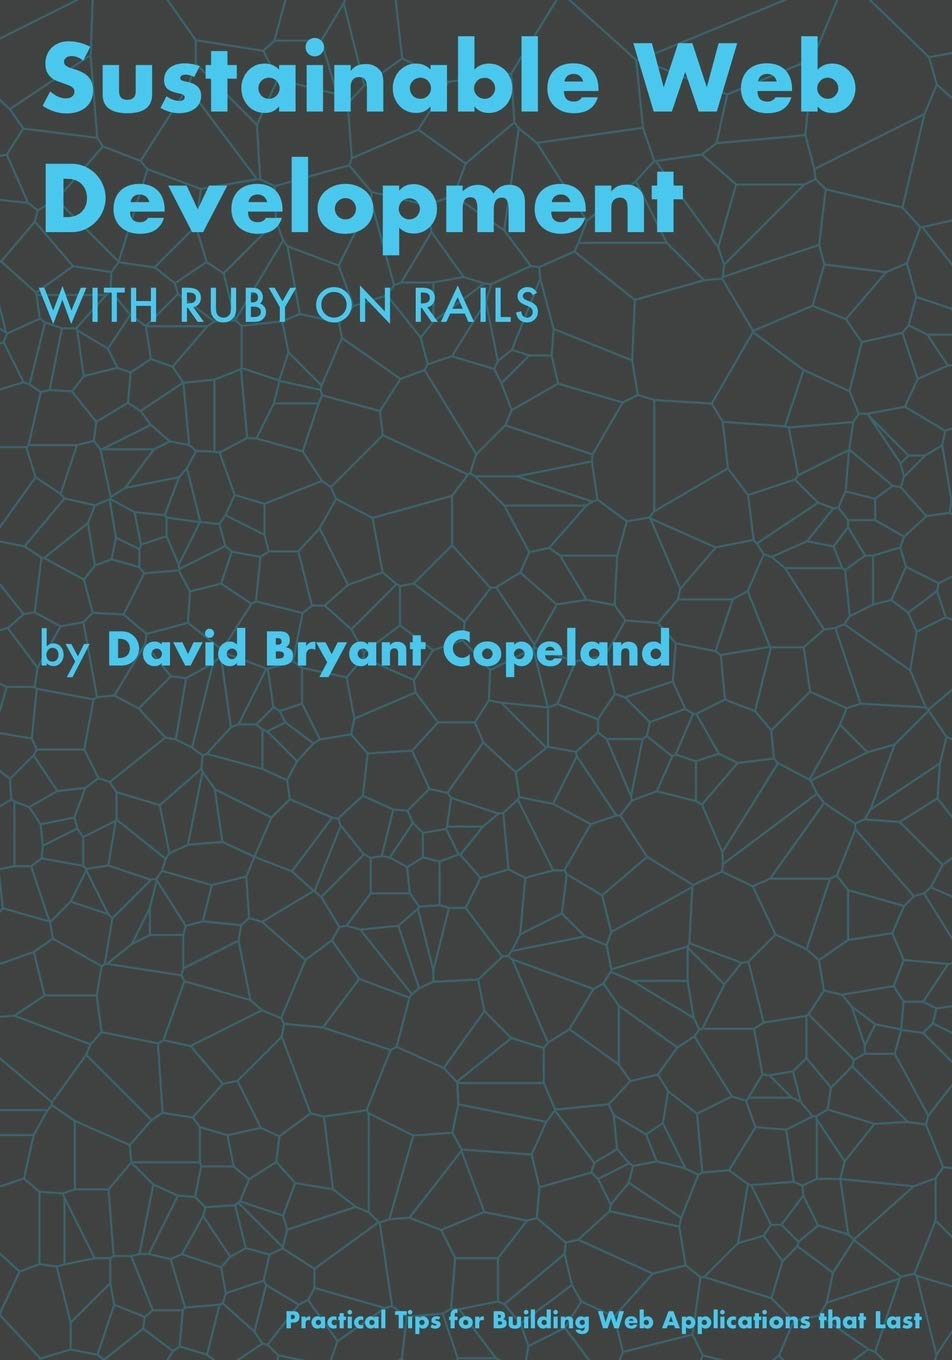 Sustainable Web Development with Ruby on Rails: Practical Tips for Building Web Applications that Last